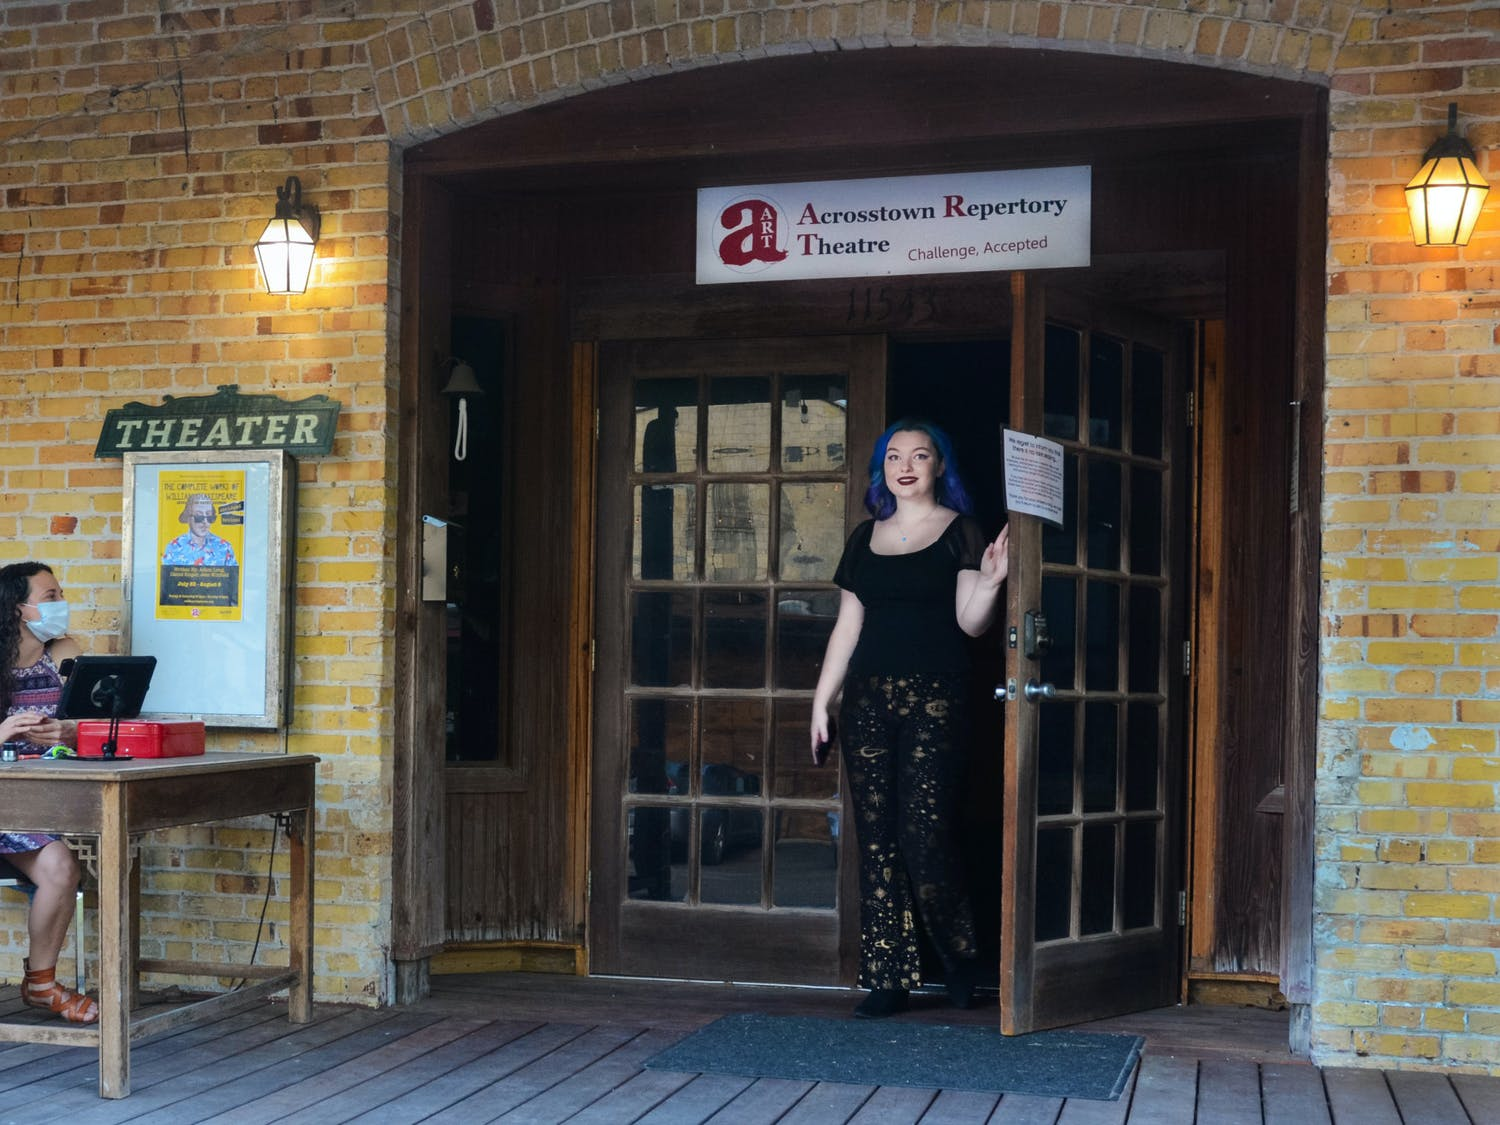 """Miranda Campos, 20, the stage director at the Acrosstown Repertory Theatre, steps outside before a showing of """"The Complete Works of WIlliam Shakespeare"""" on Saturday, July 24, 2021. The show runs from July 22 to August 8 at the theater's 619 S Main Street location; the compilation production transforms 37 historical plays, tragedies and comedies into a single 90 minute show."""